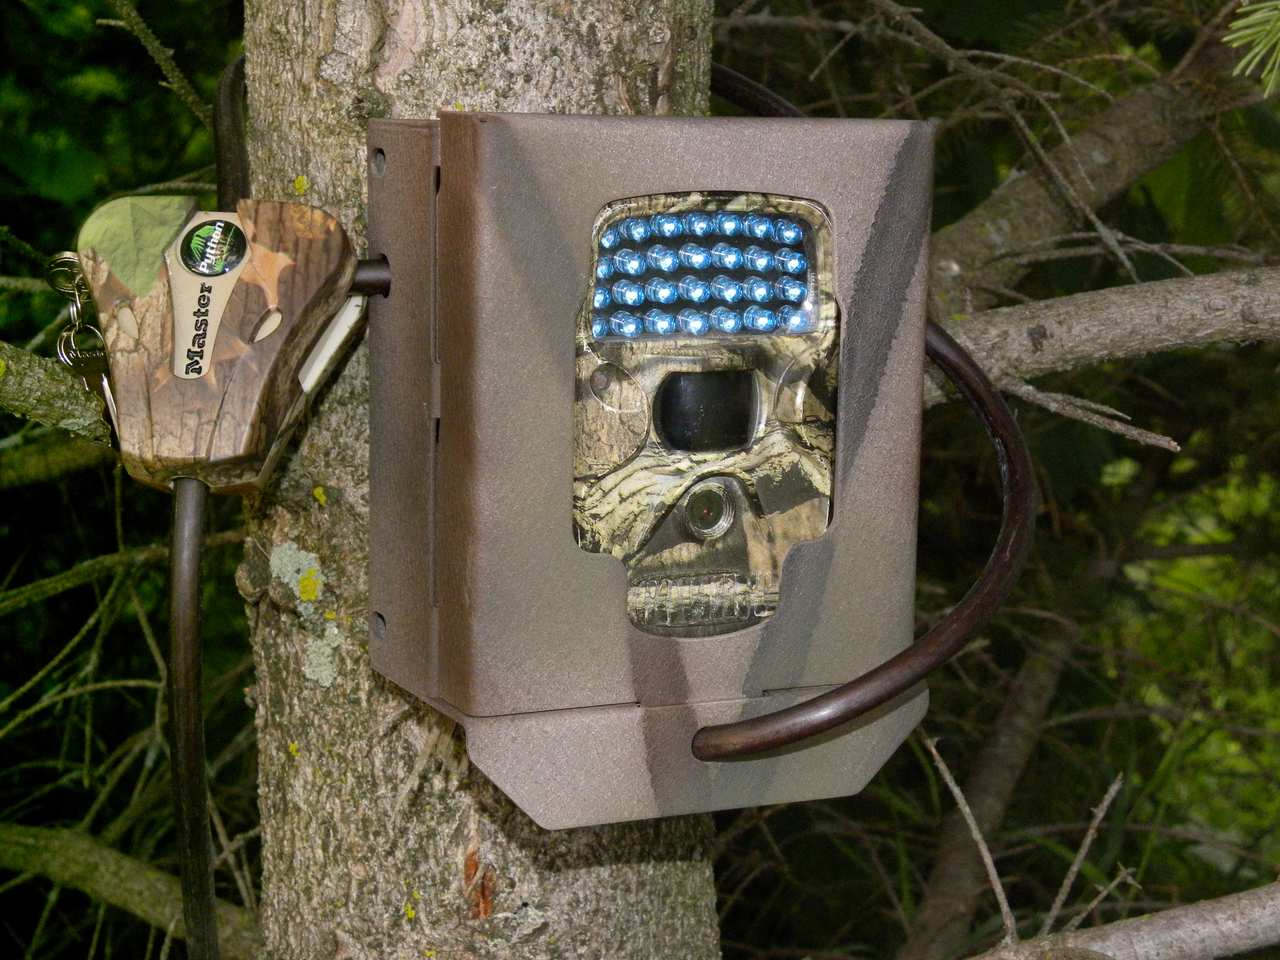 covert trail cameras